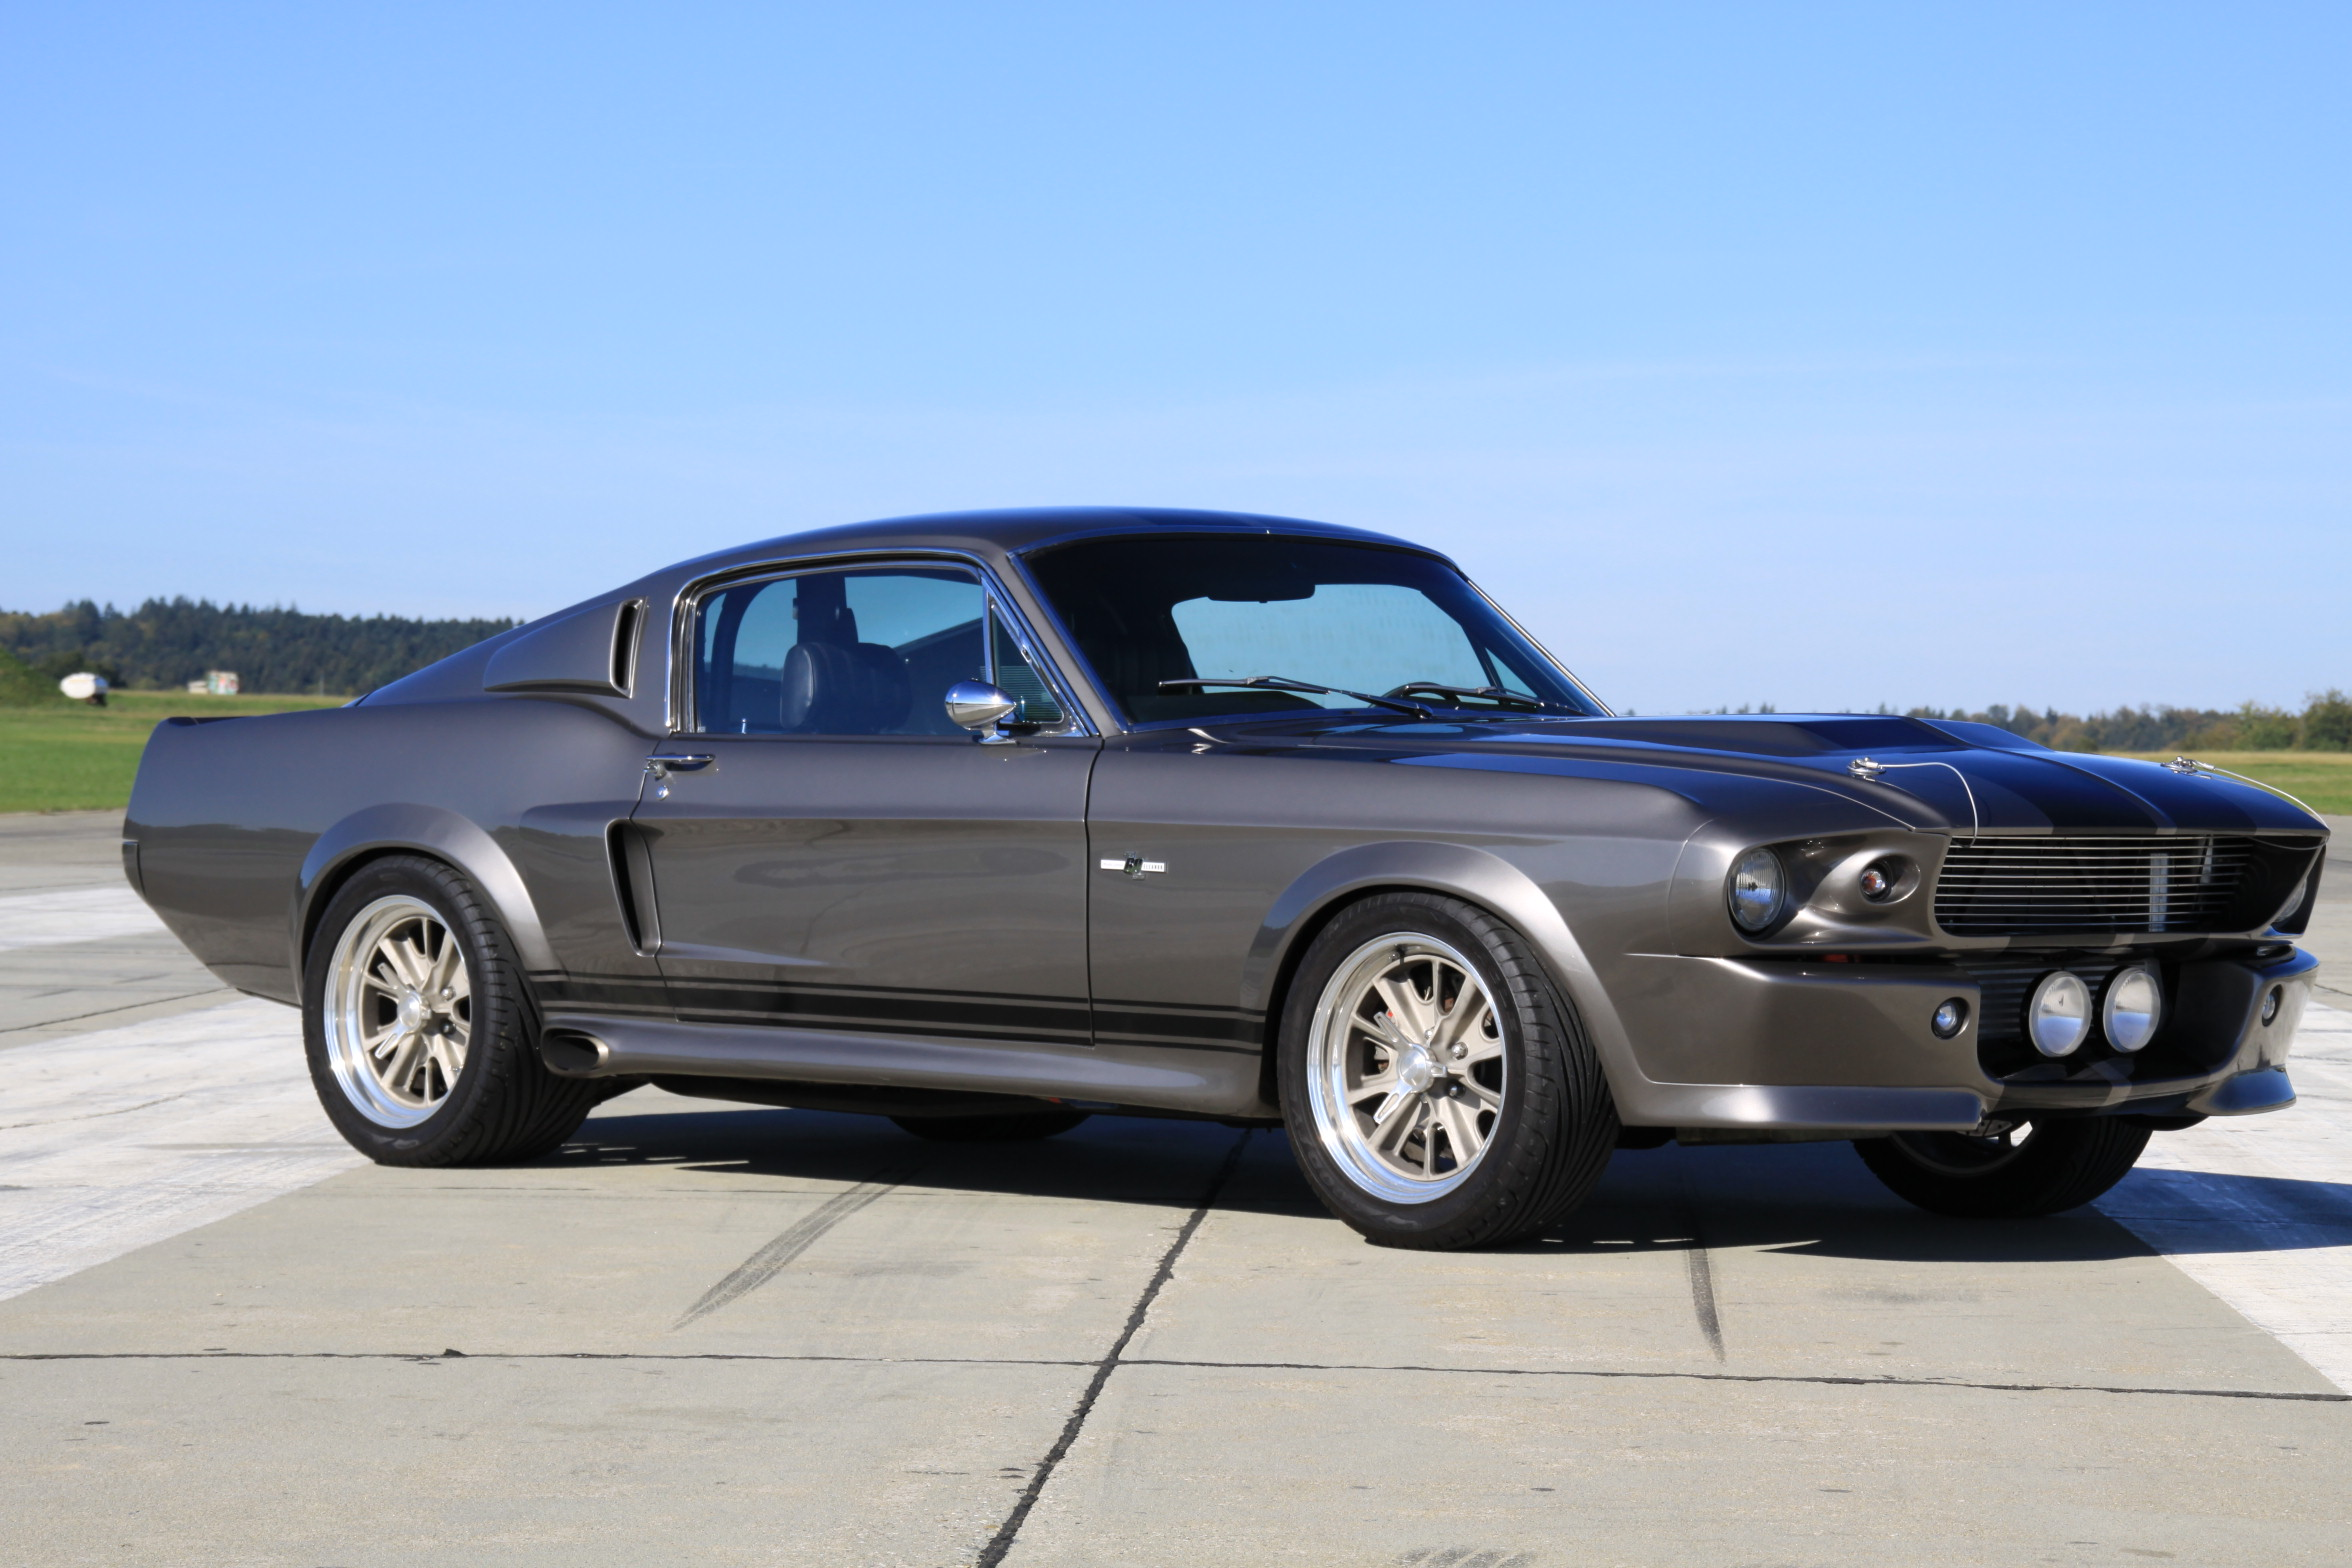 mustang shelby 2014 a vendre autos post. Black Bedroom Furniture Sets. Home Design Ideas